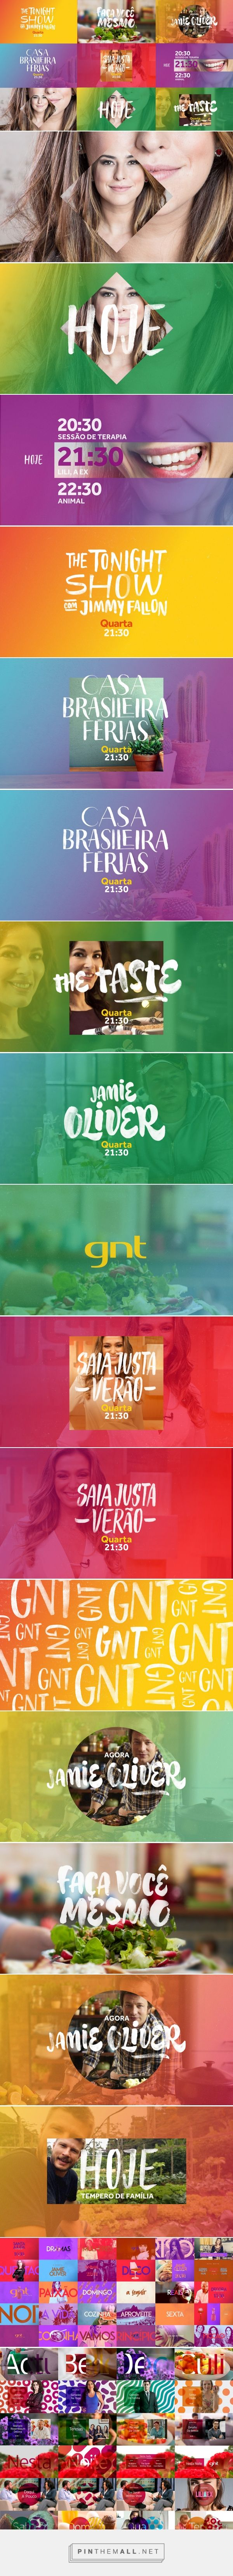 Globosat GNT Channel Branding Refresh